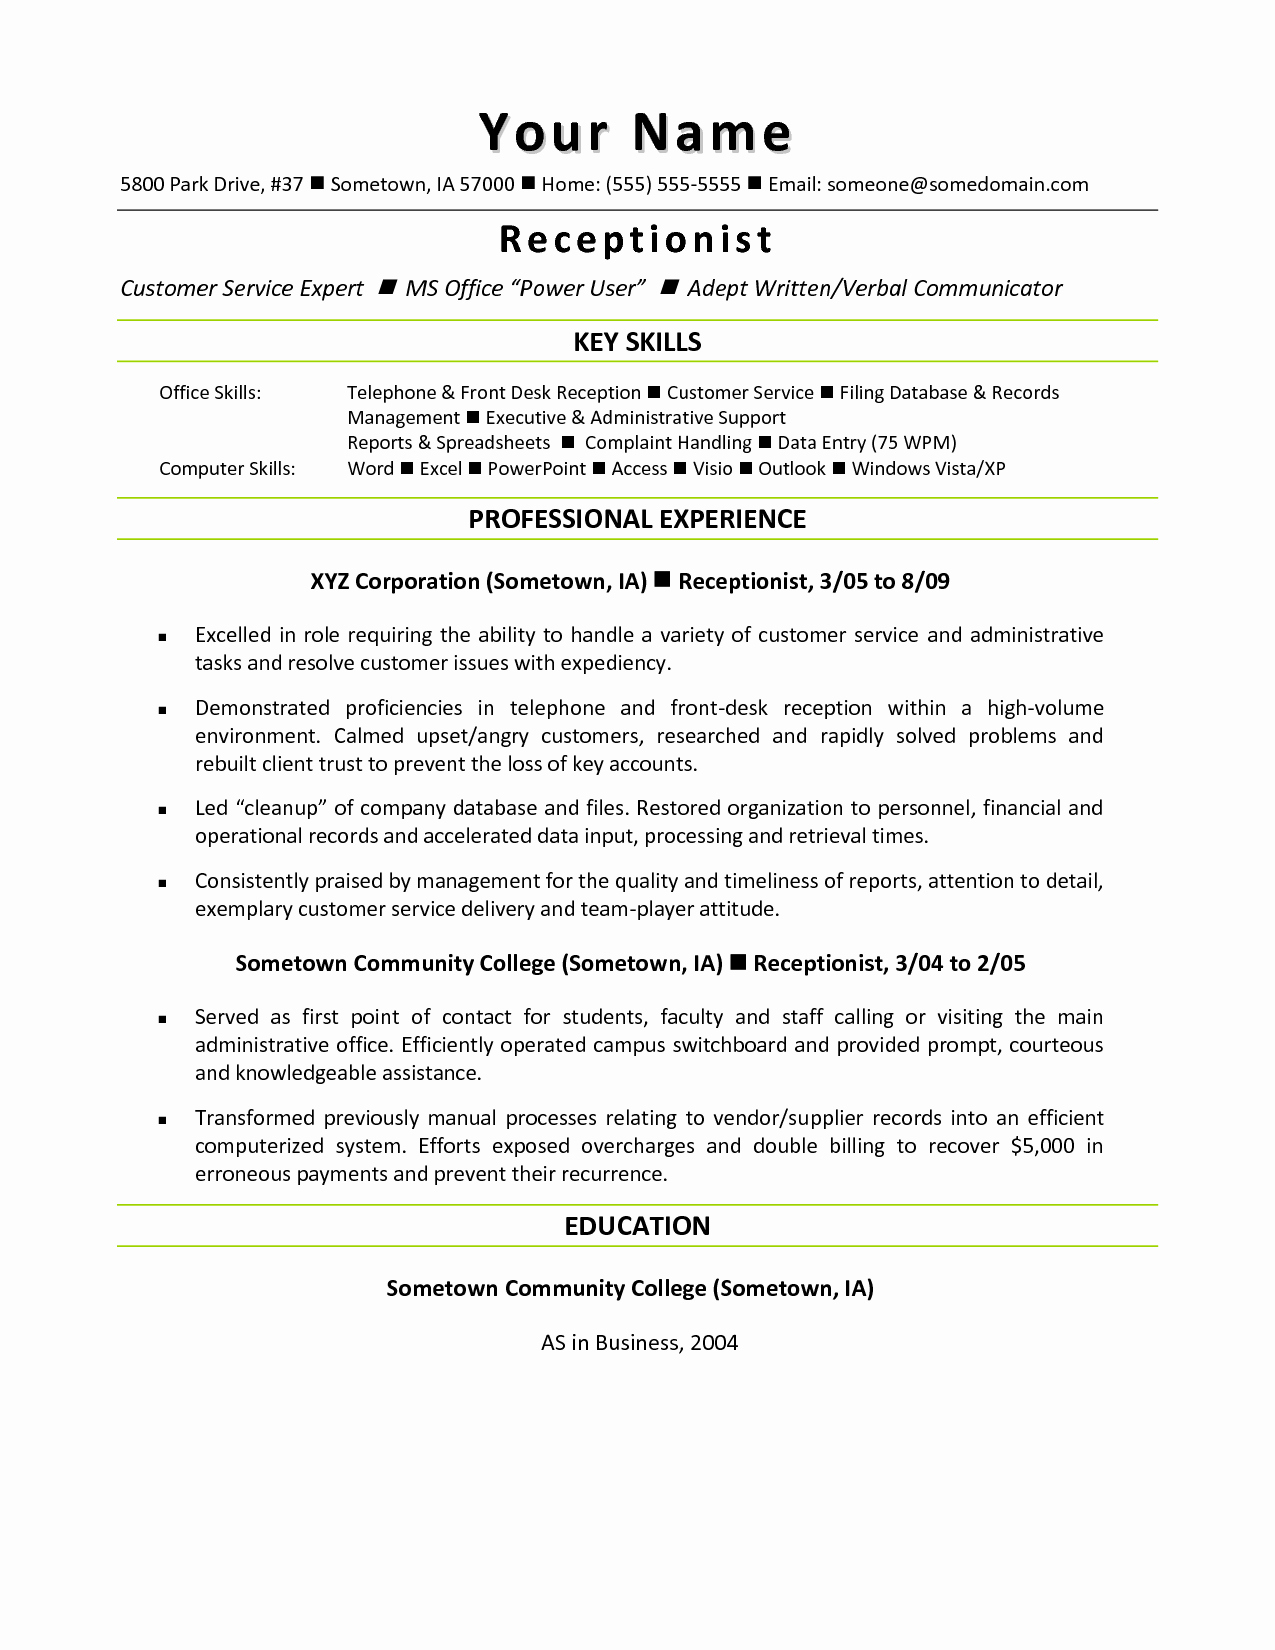 Medical Receptionist Duties for Resume - Resume Cover Letter Template for Medical assistant Samples